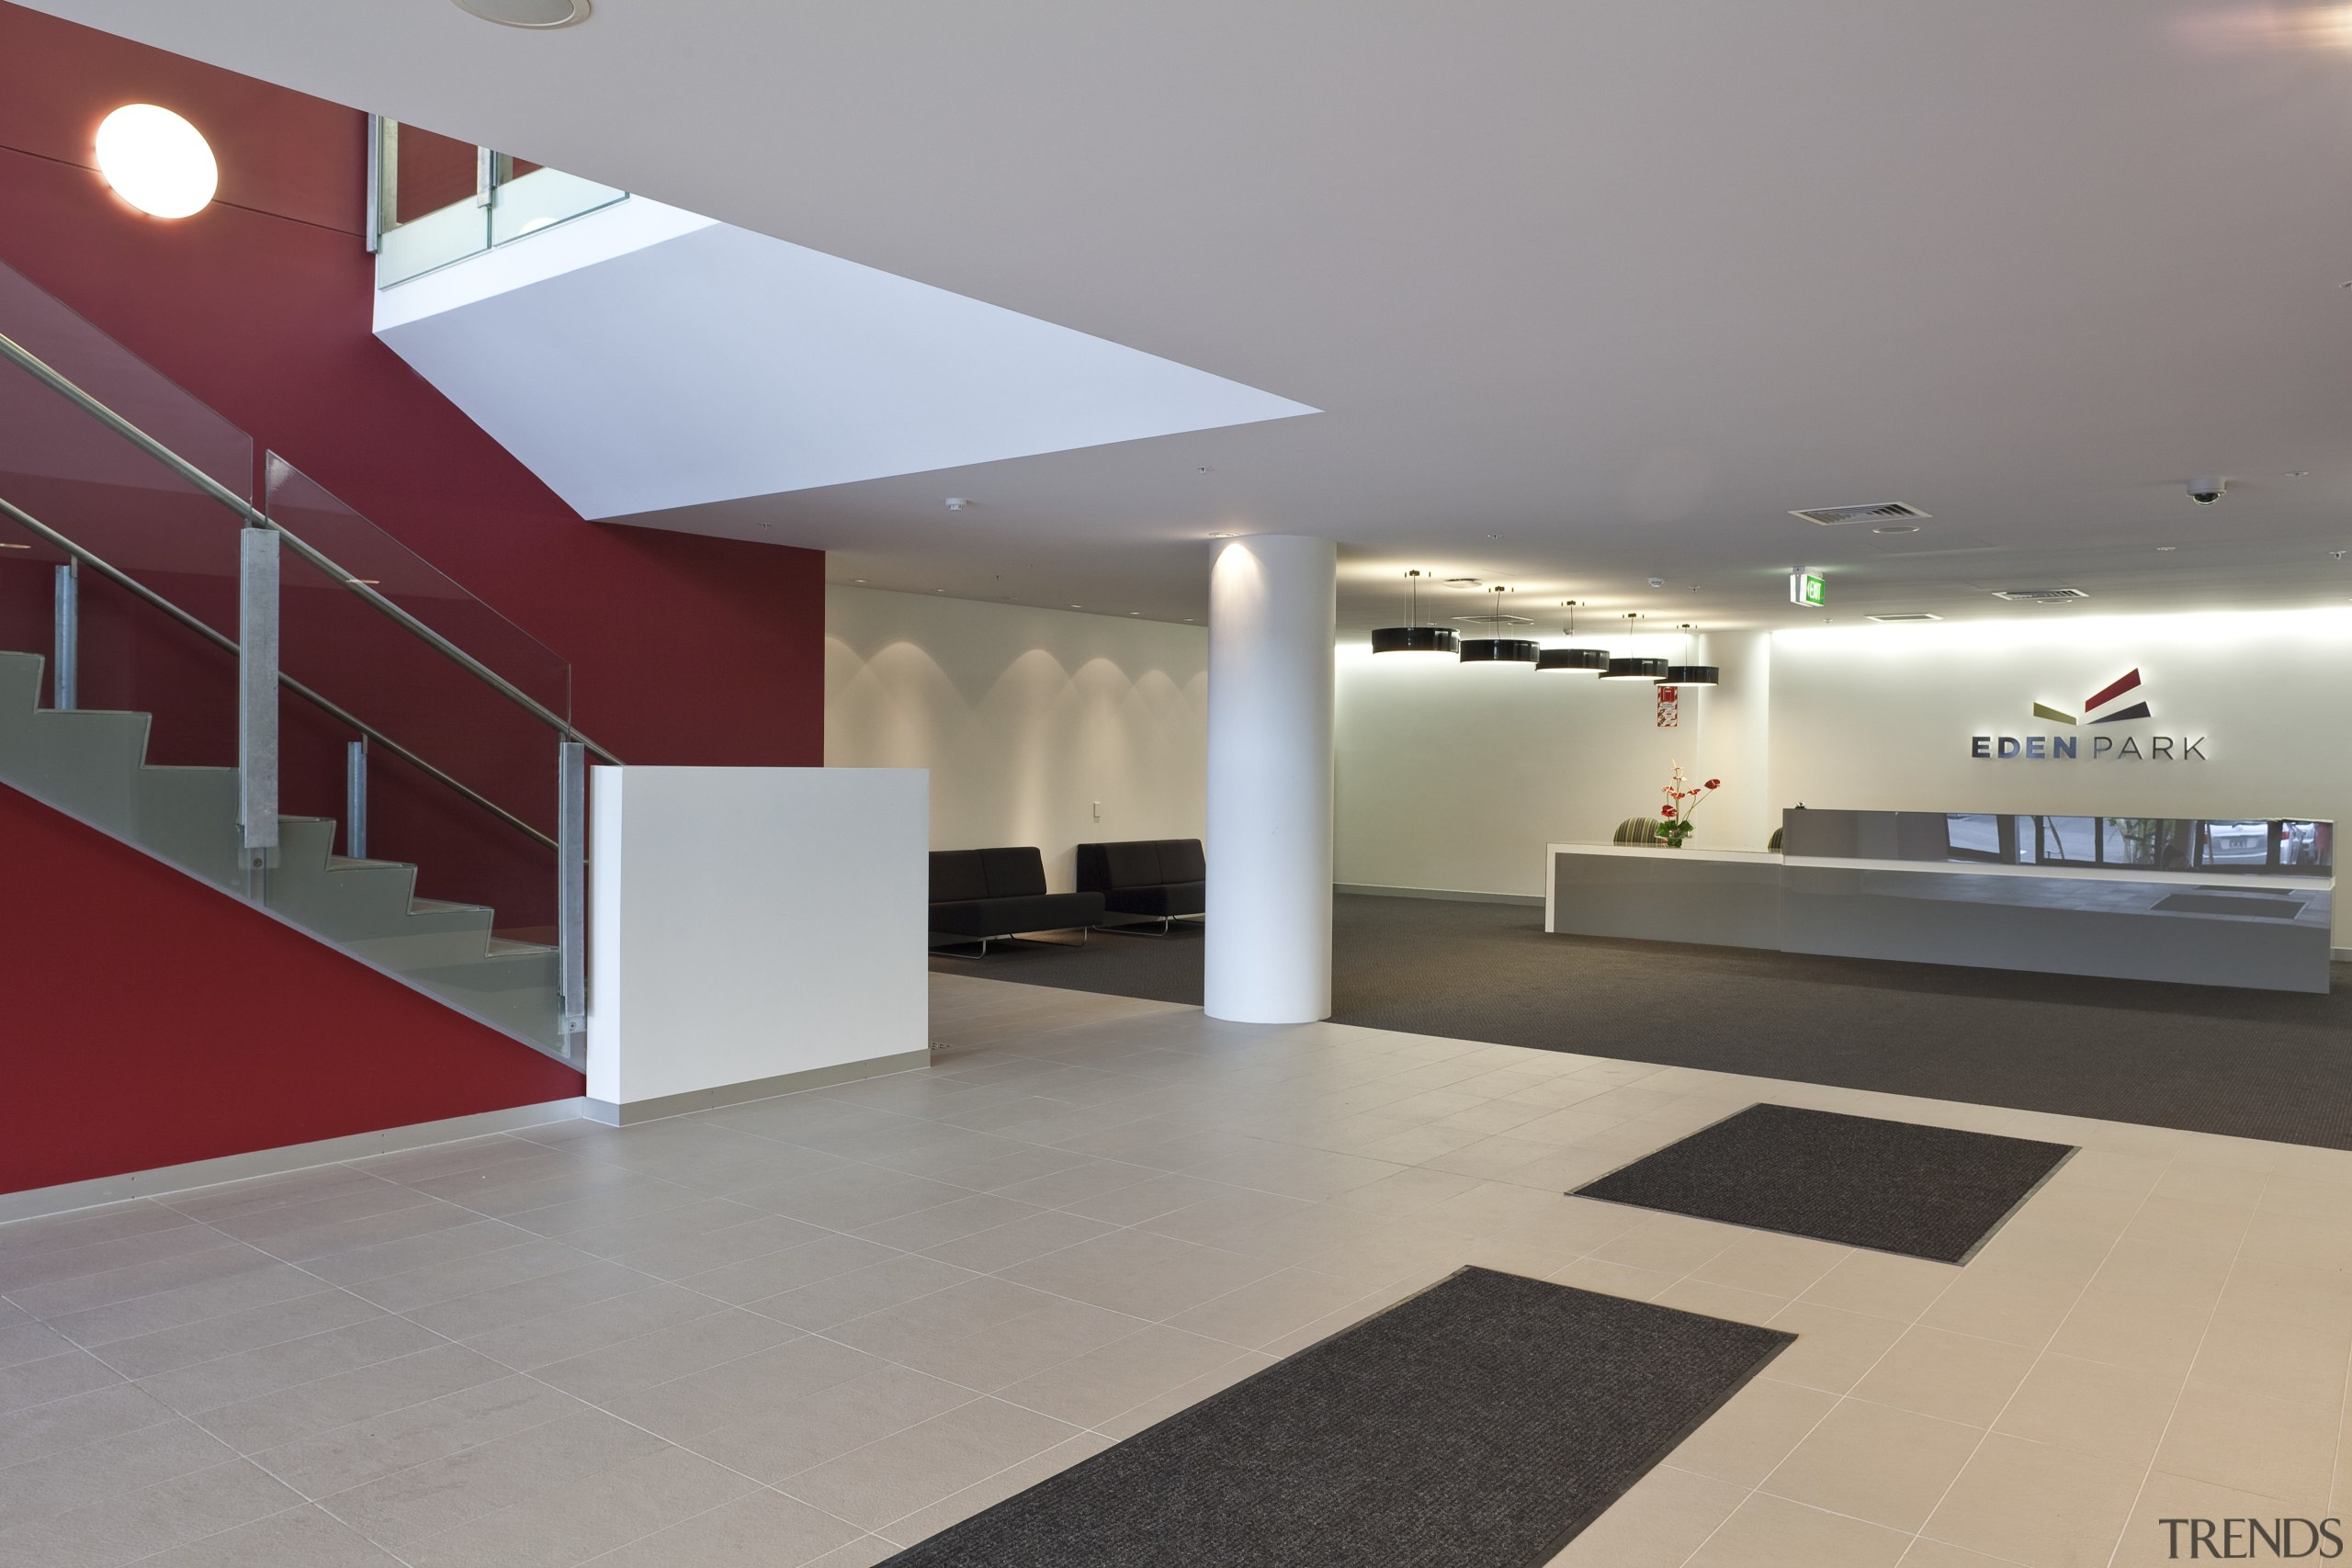 Singer Group undertook the broad array of electrical architecture, ceiling, daylighting, floor, flooring, interior design, lobby, product design, gray